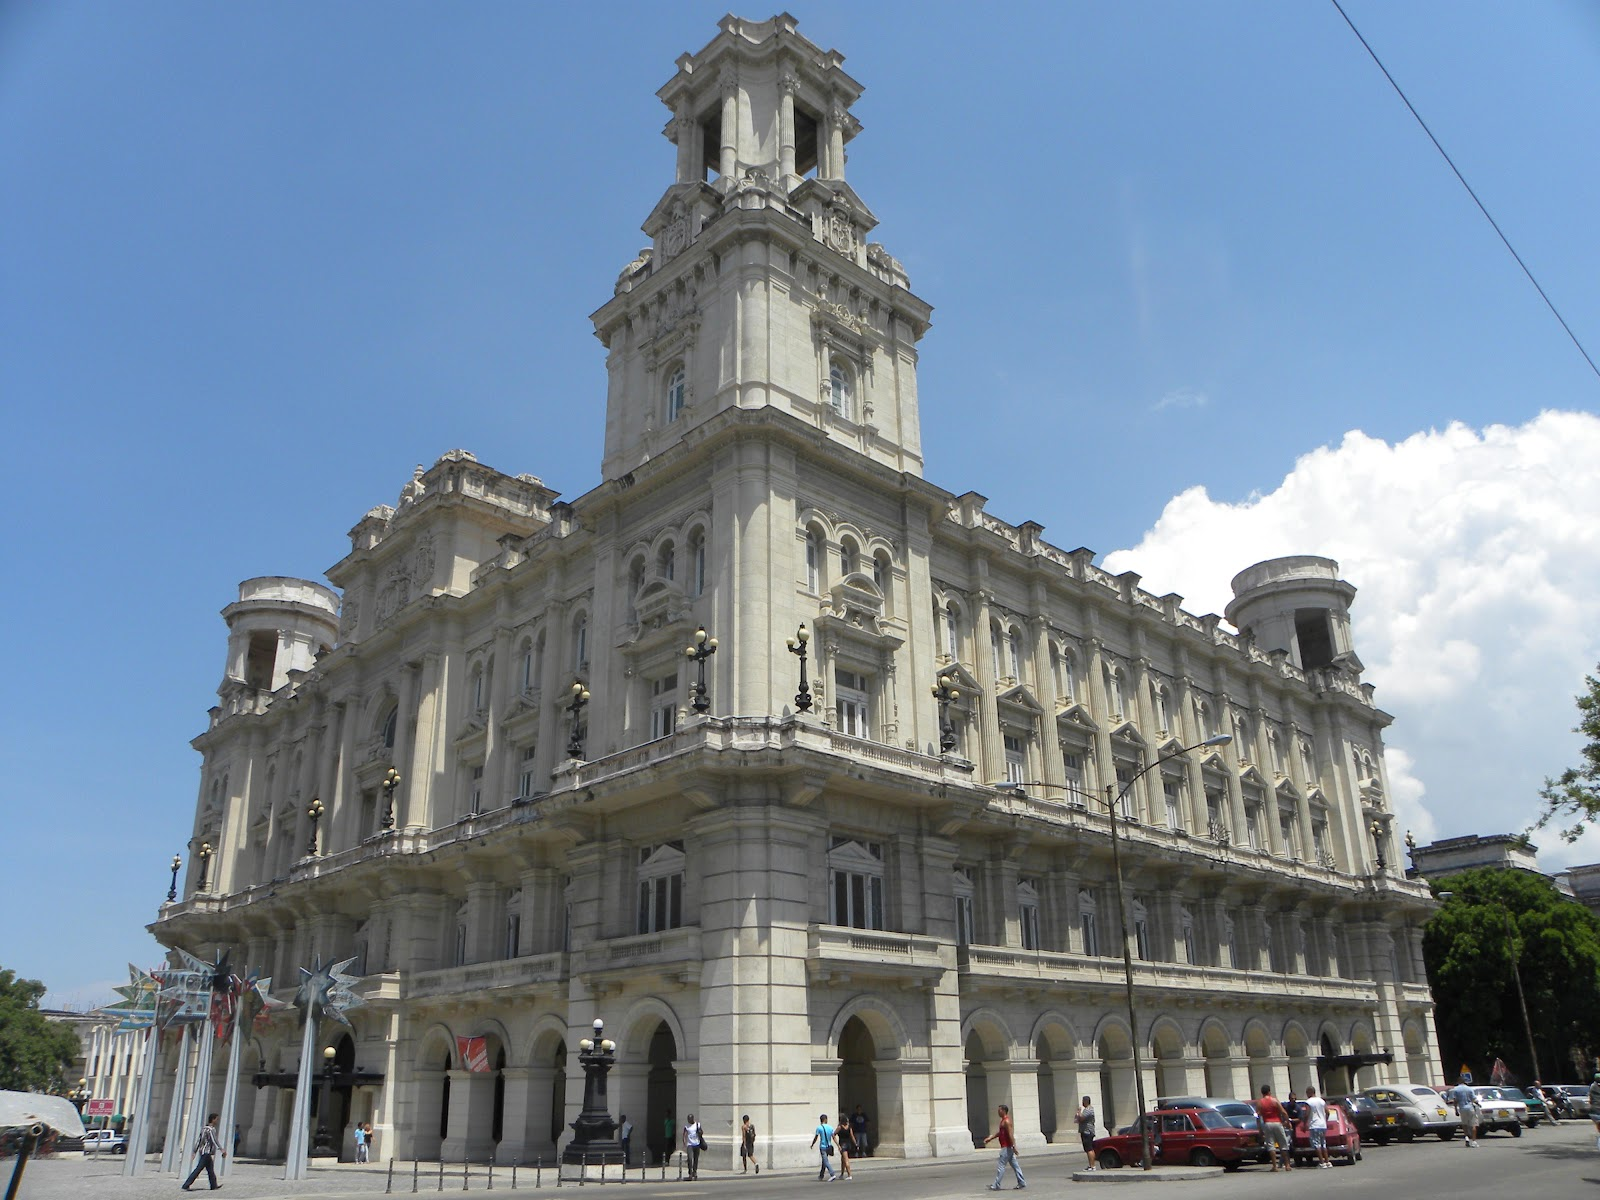 National Museum of Fine Arts in Havana, Cuba